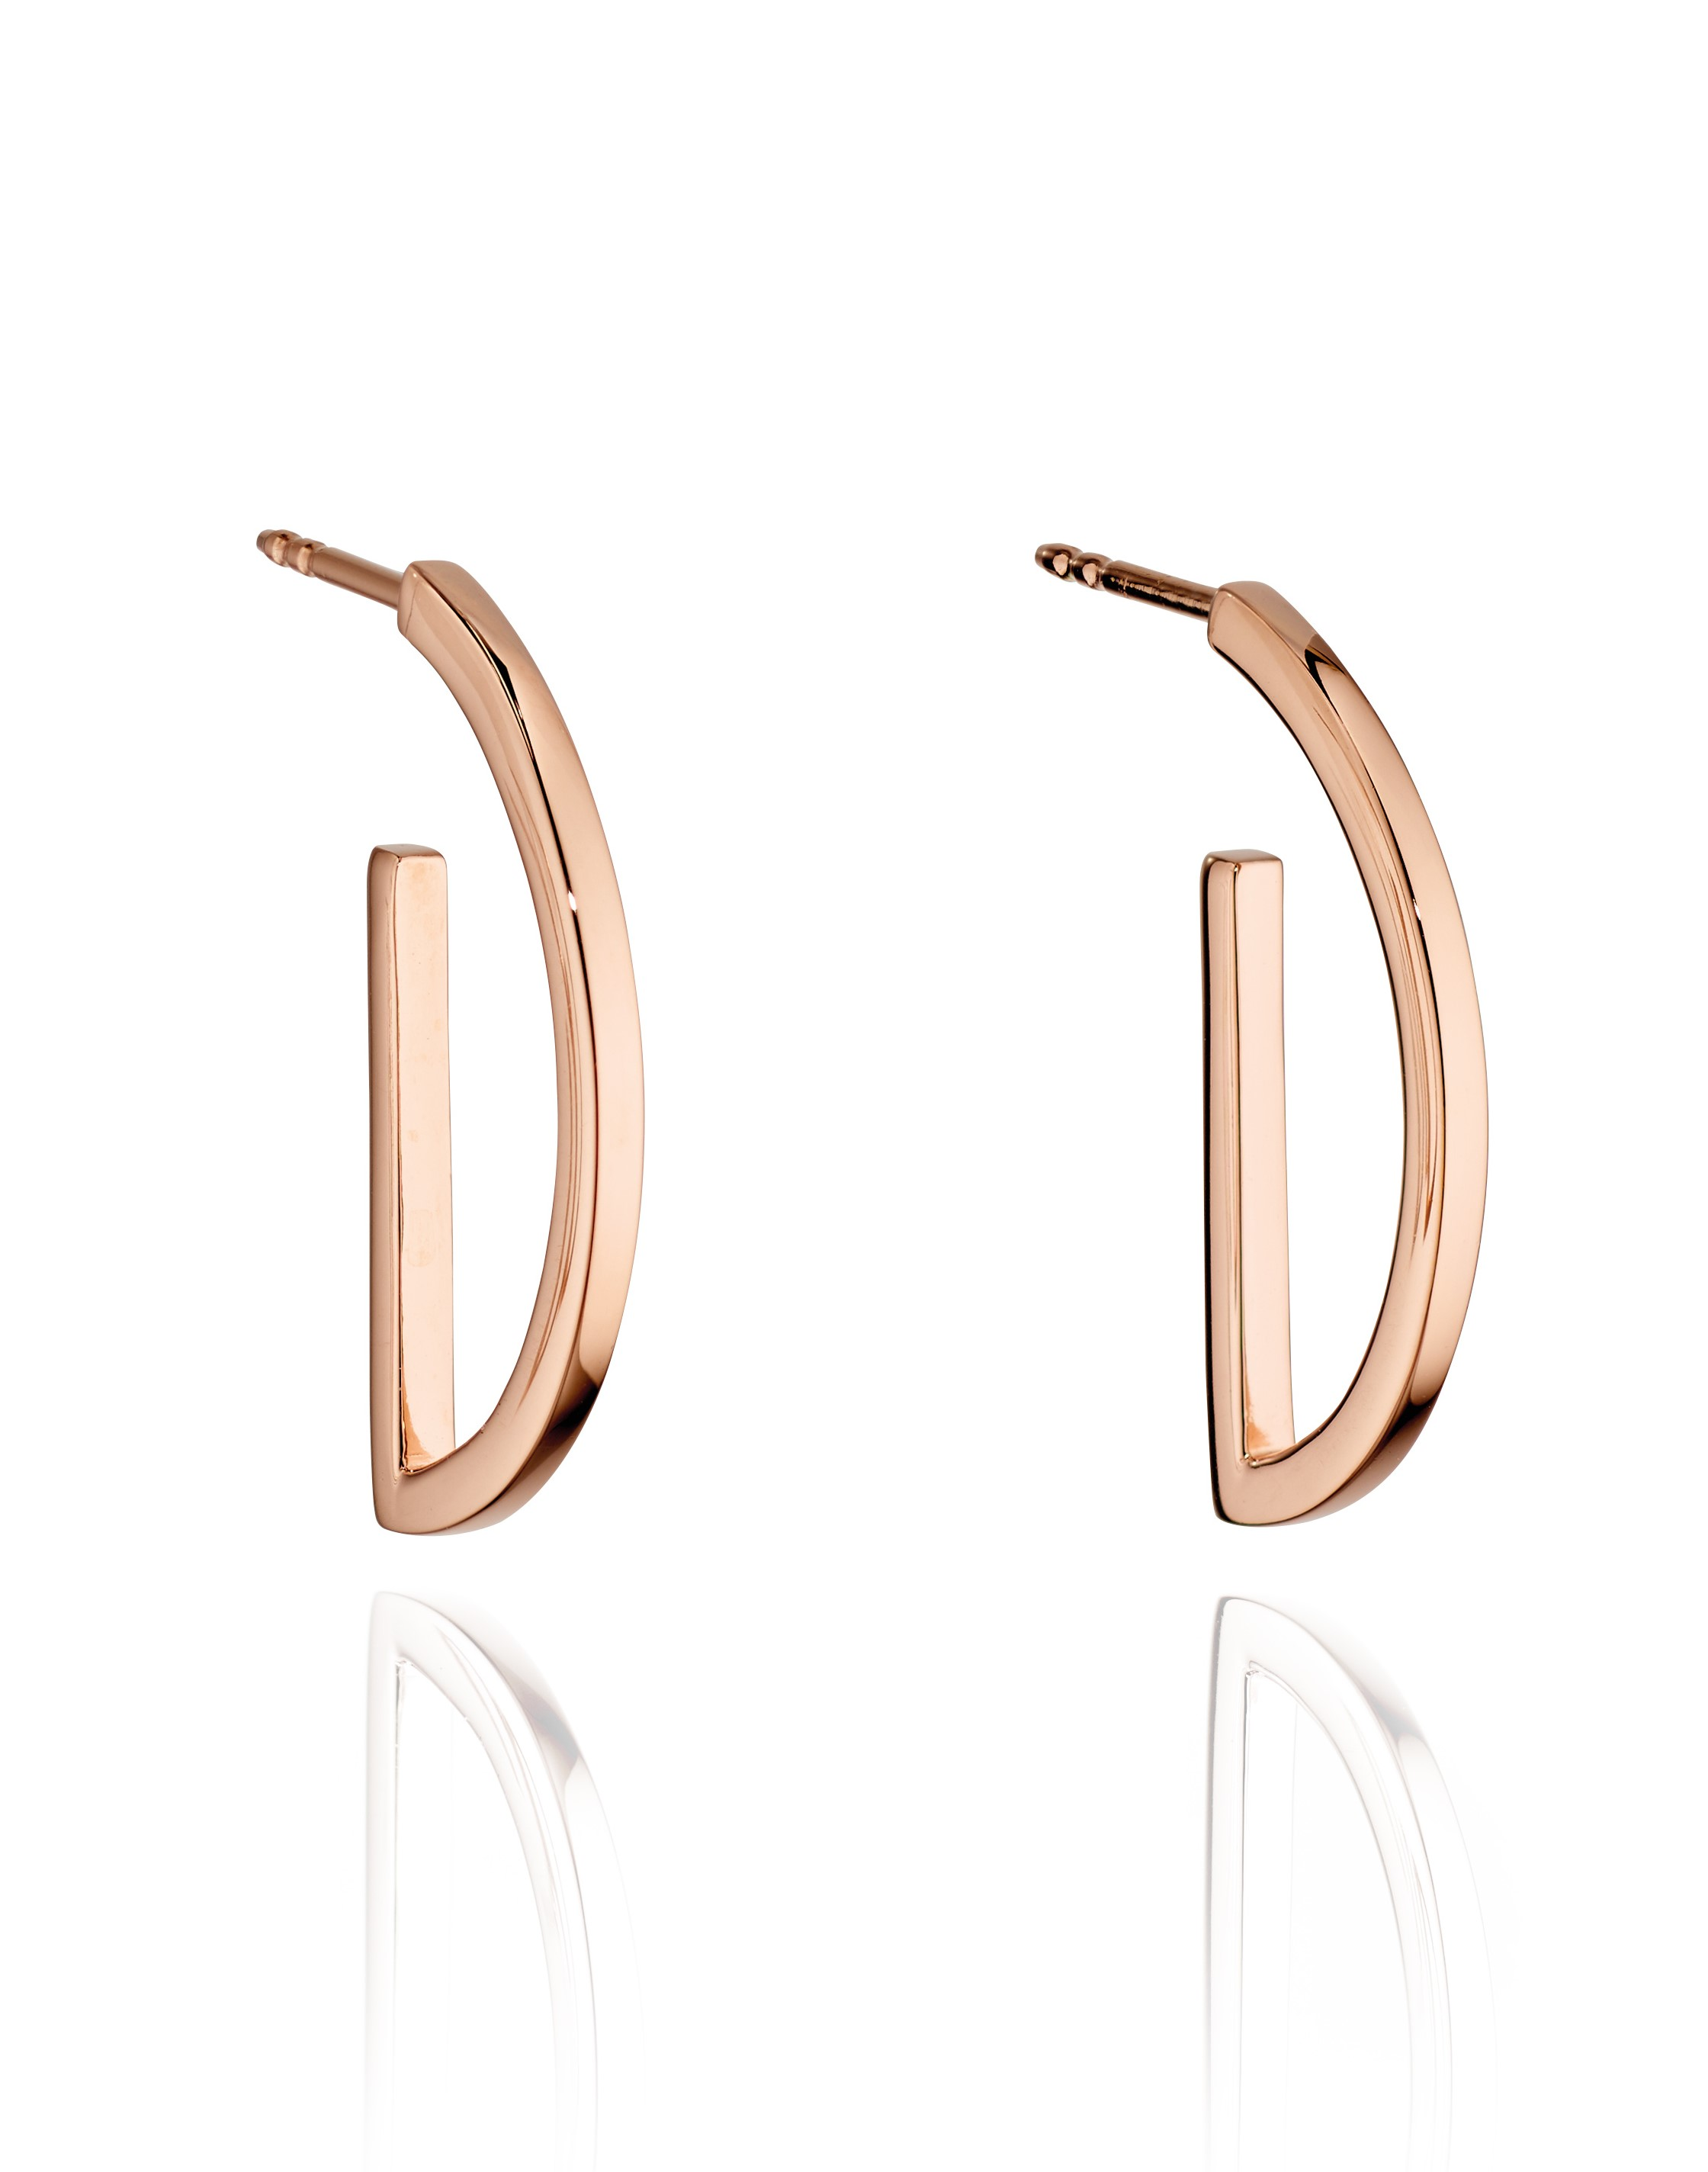 b93dad873 Pefect for those looking to raise their jewellery game – these striking  silver and rose gold plated pieces from Fiorelli Silver by Gecko do just  that while ...